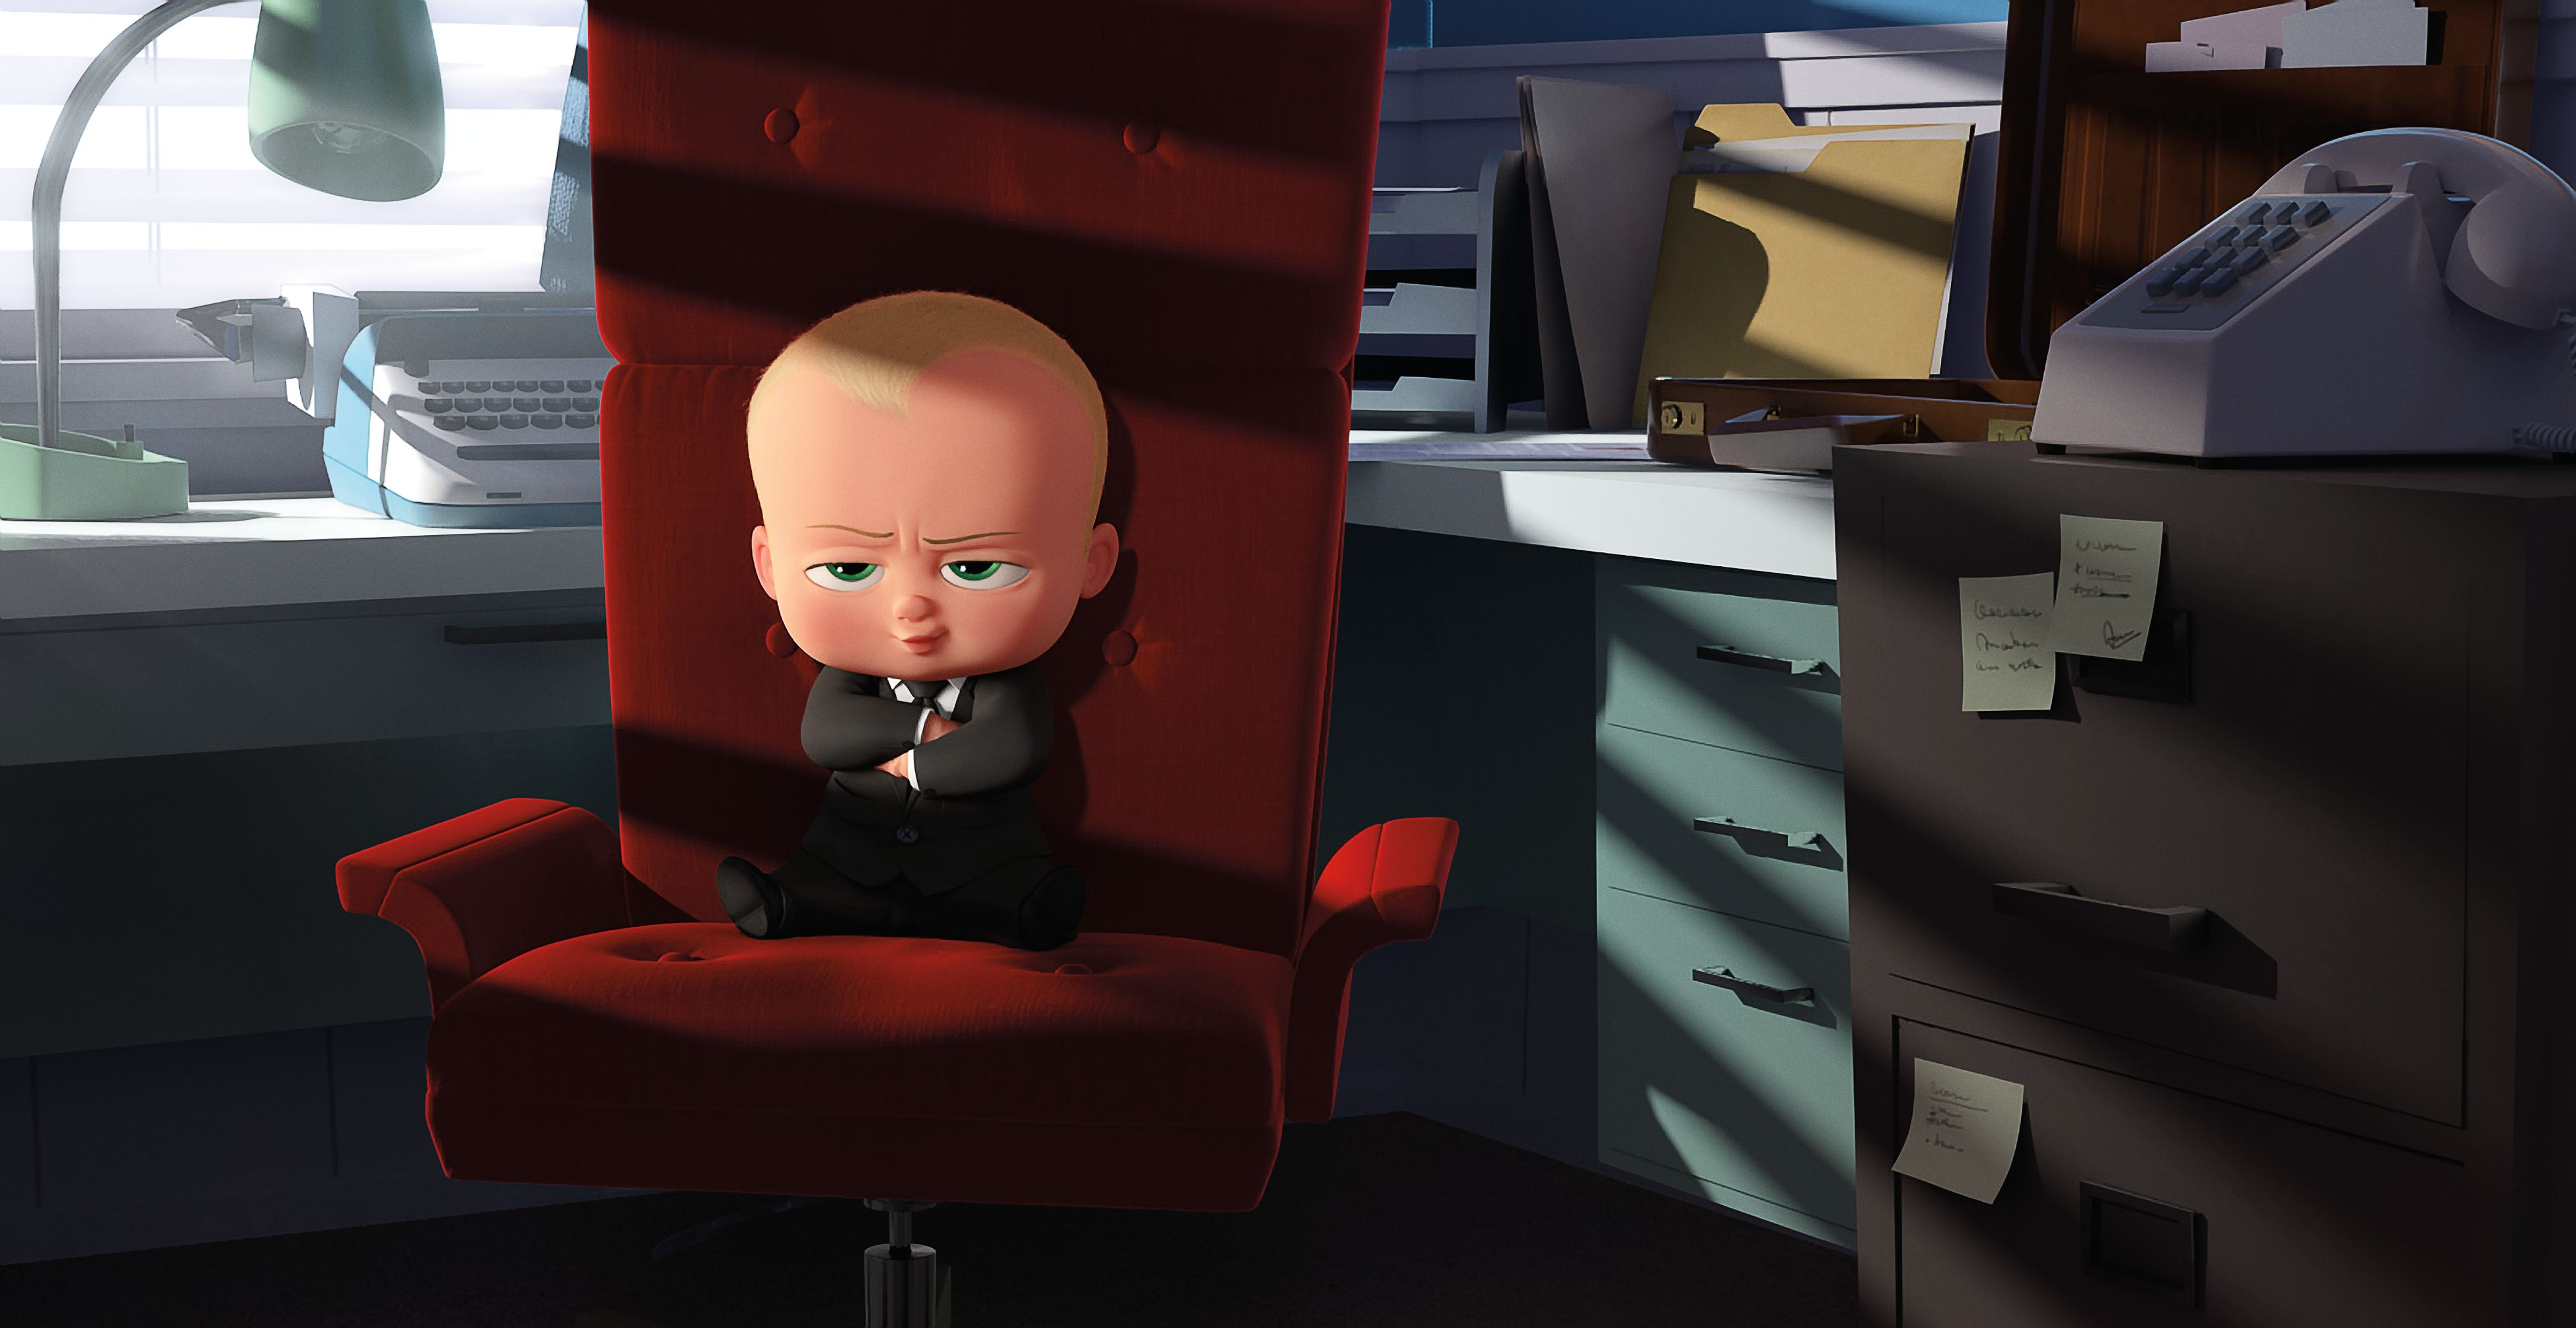 the-boss-baby%e5%8e%9f%e9%a1%8c%e4%bb%ae%e3%83%a1%e3%82%a4%e3%83%b3